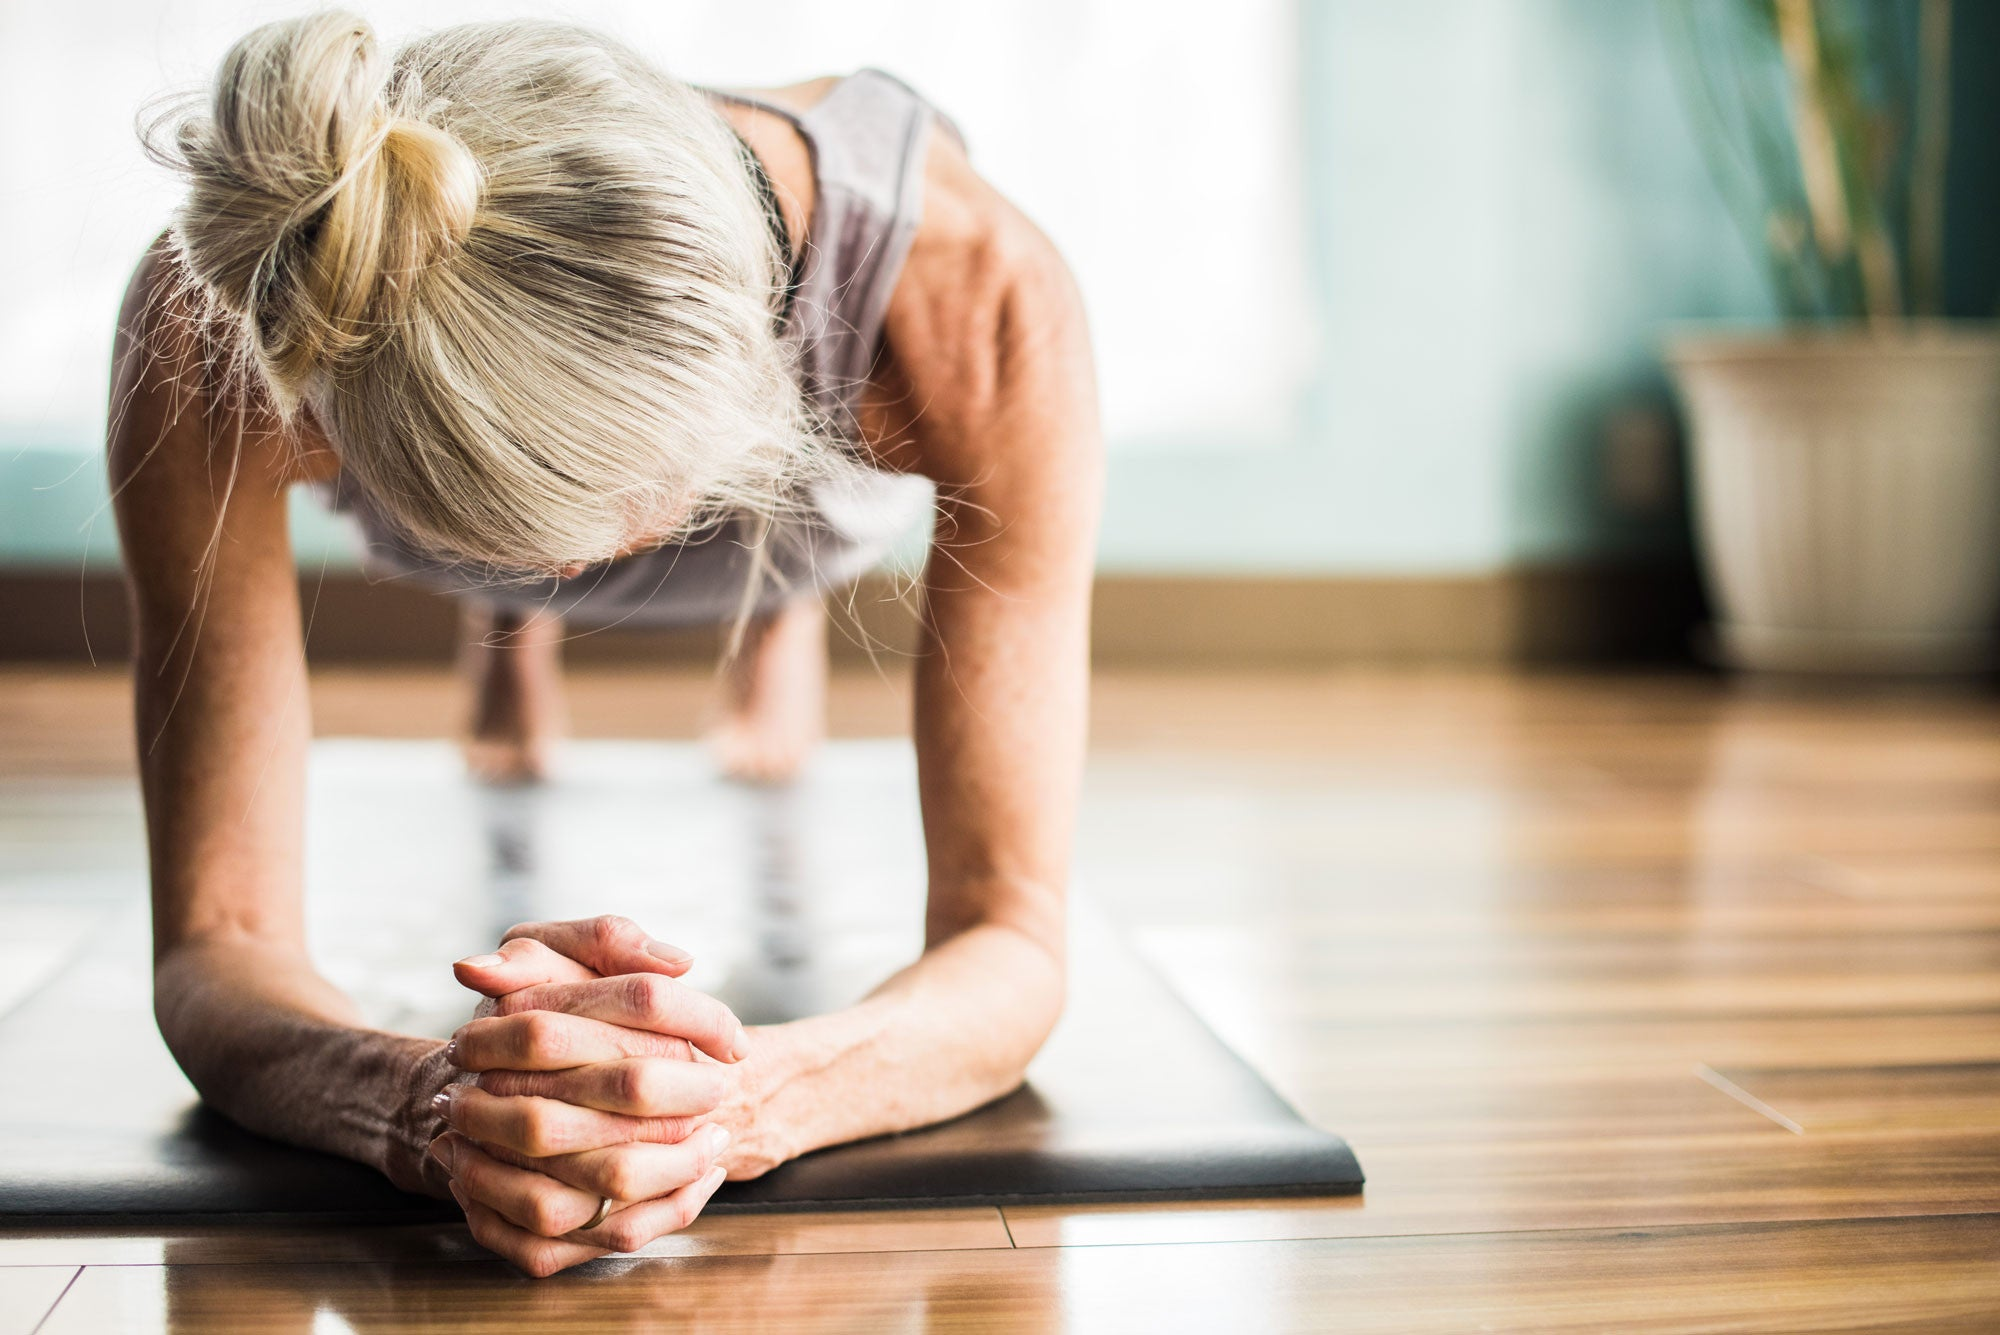 How to lose weight while exercising at home